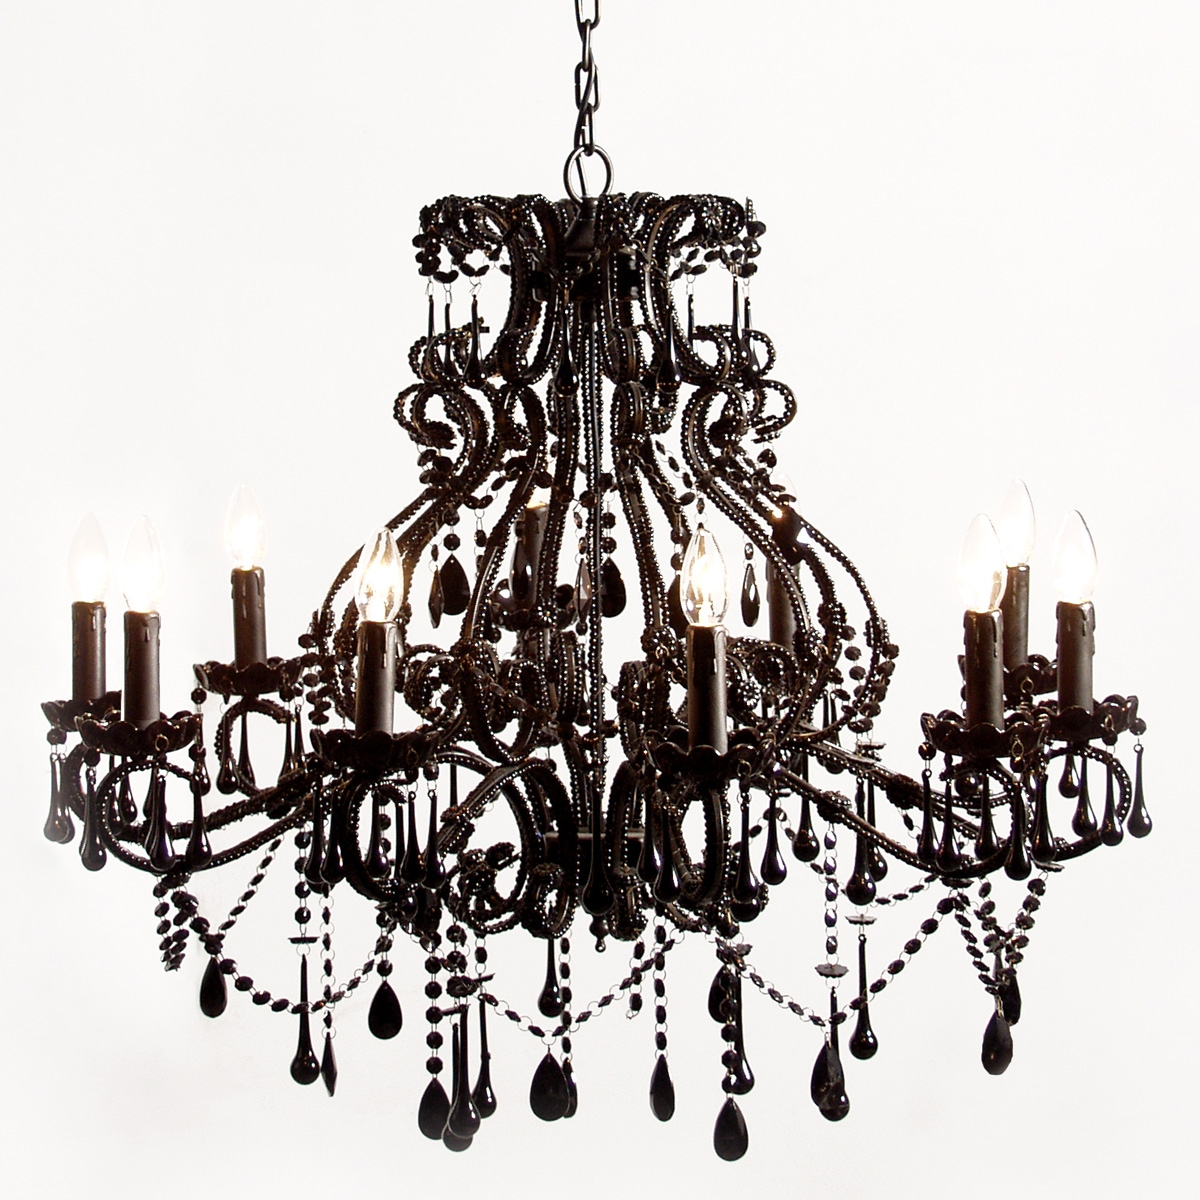 Vintage Black Chandelier For Bedroom Image 4 Courtagerivegauche Throughout Vintage Black Chandelier (#9 of 12)